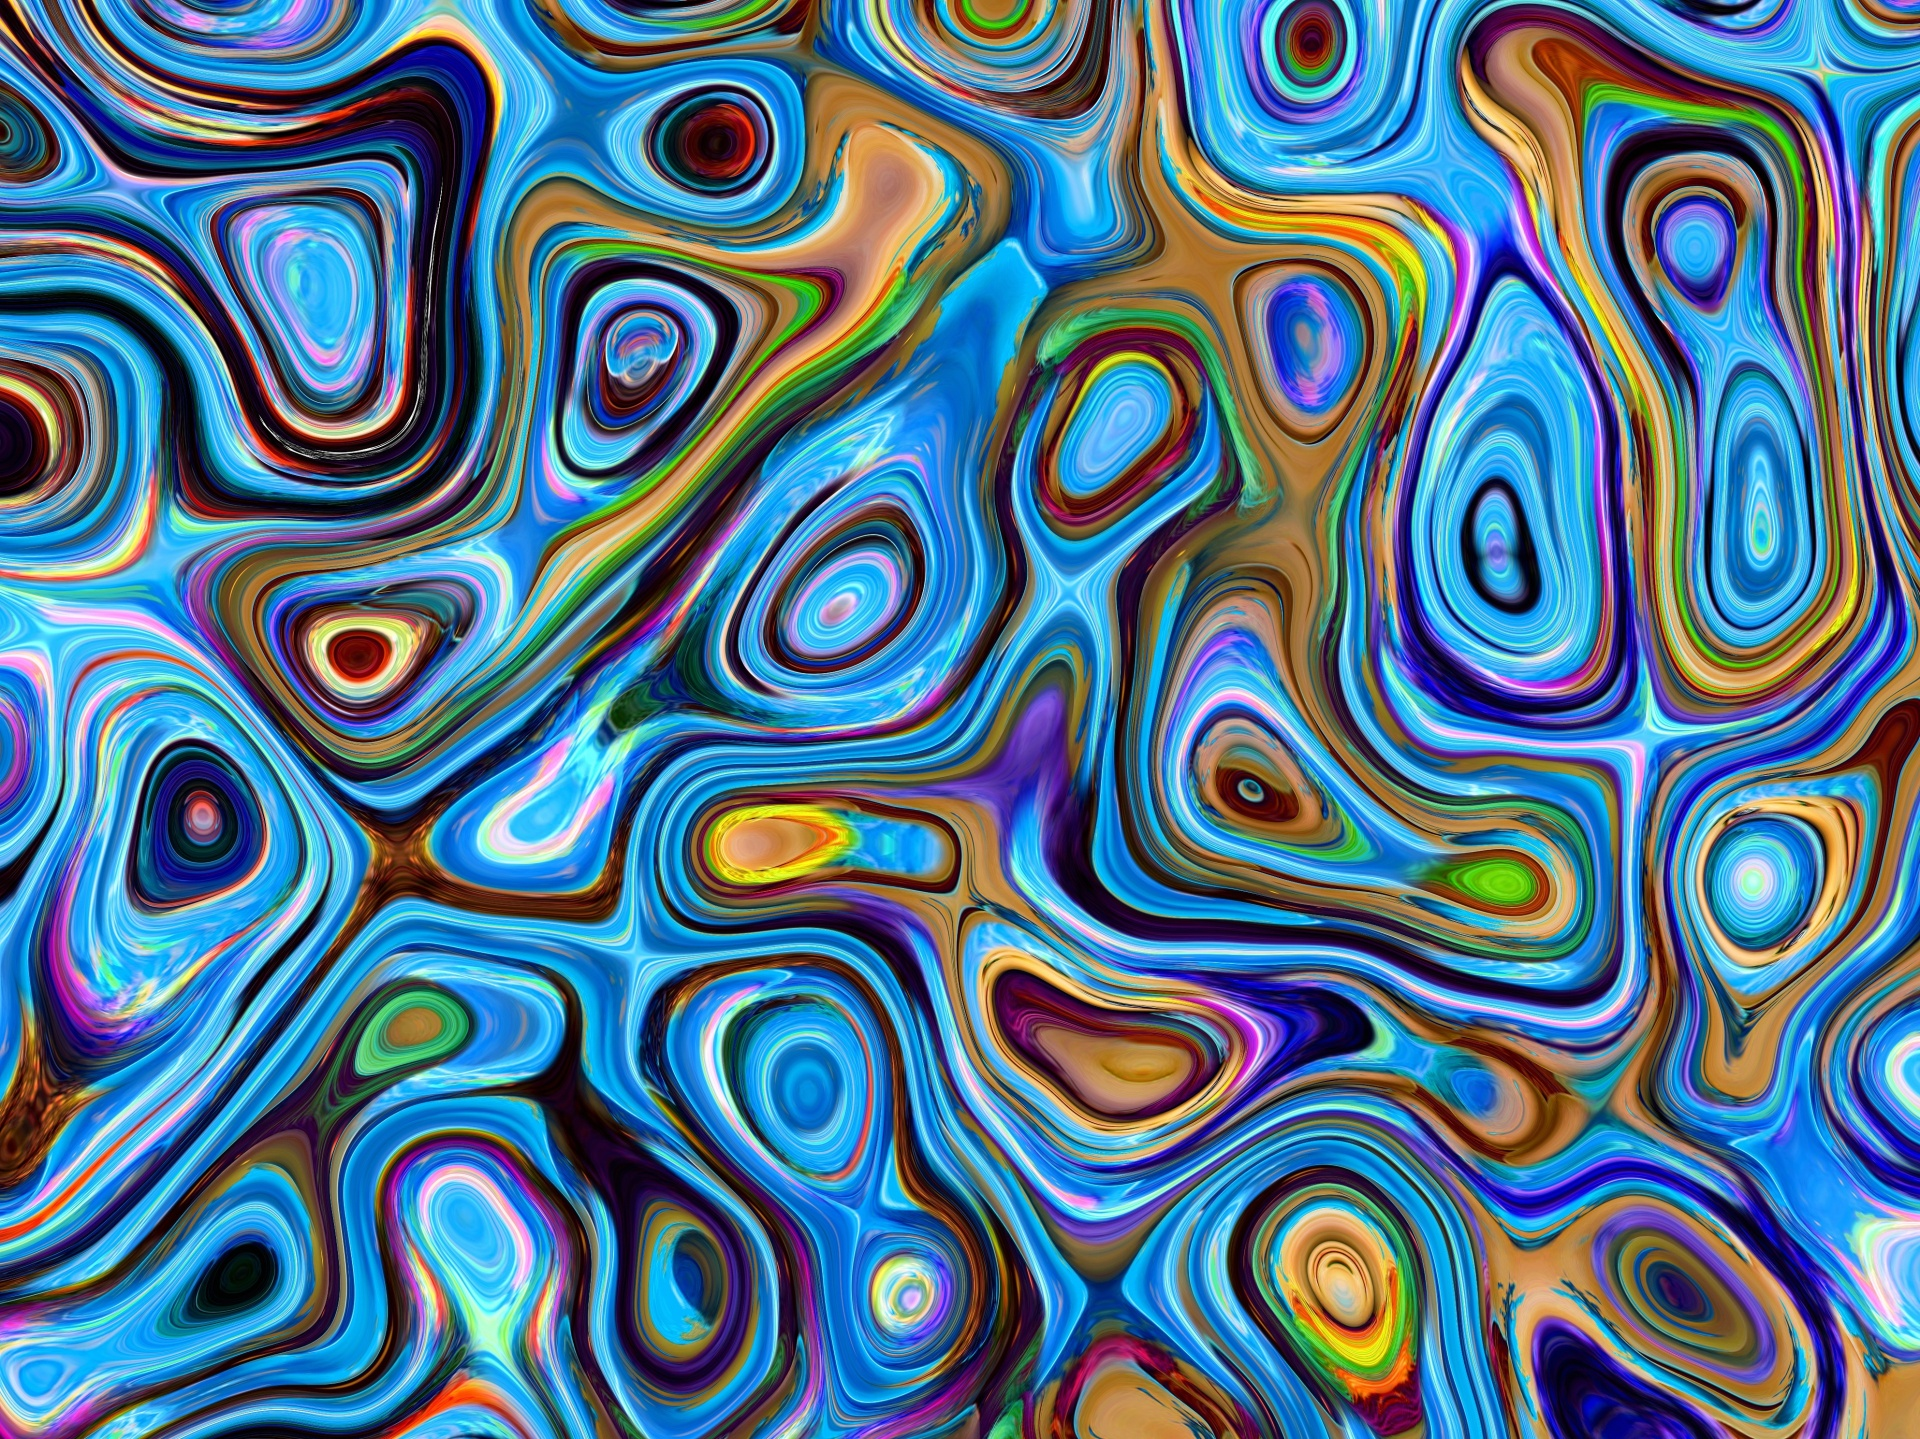 Abstract Design Pattern Free Stock Photo - Public Domain Pictures